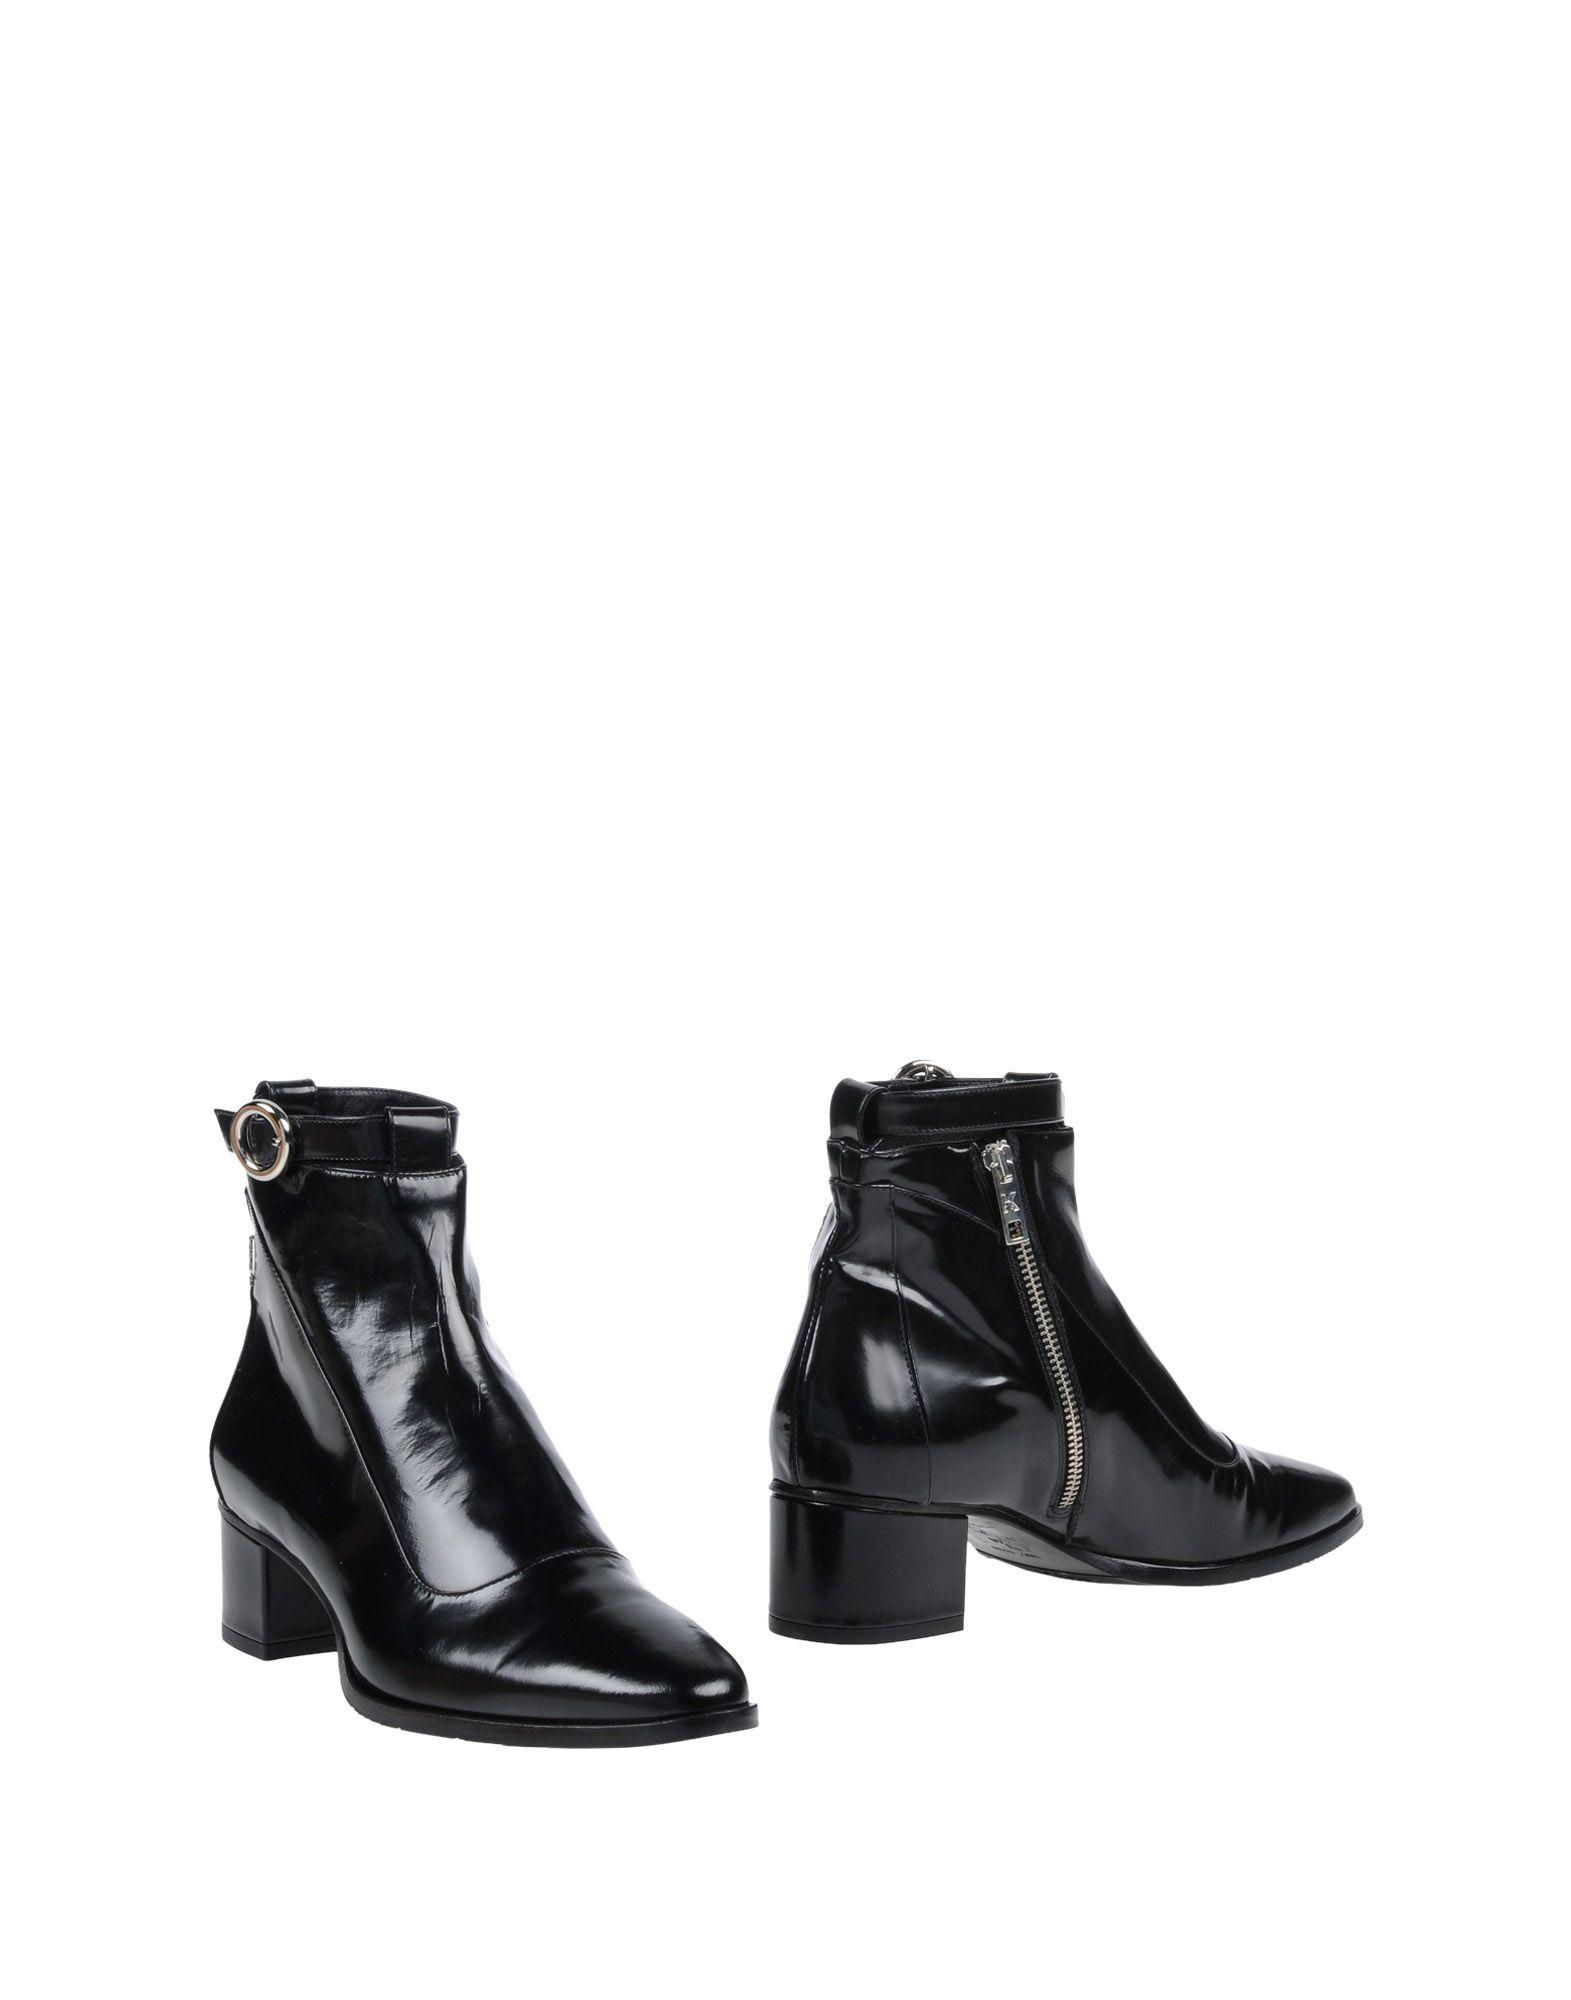 Karl Lagerfeld Ankle Boots In Black